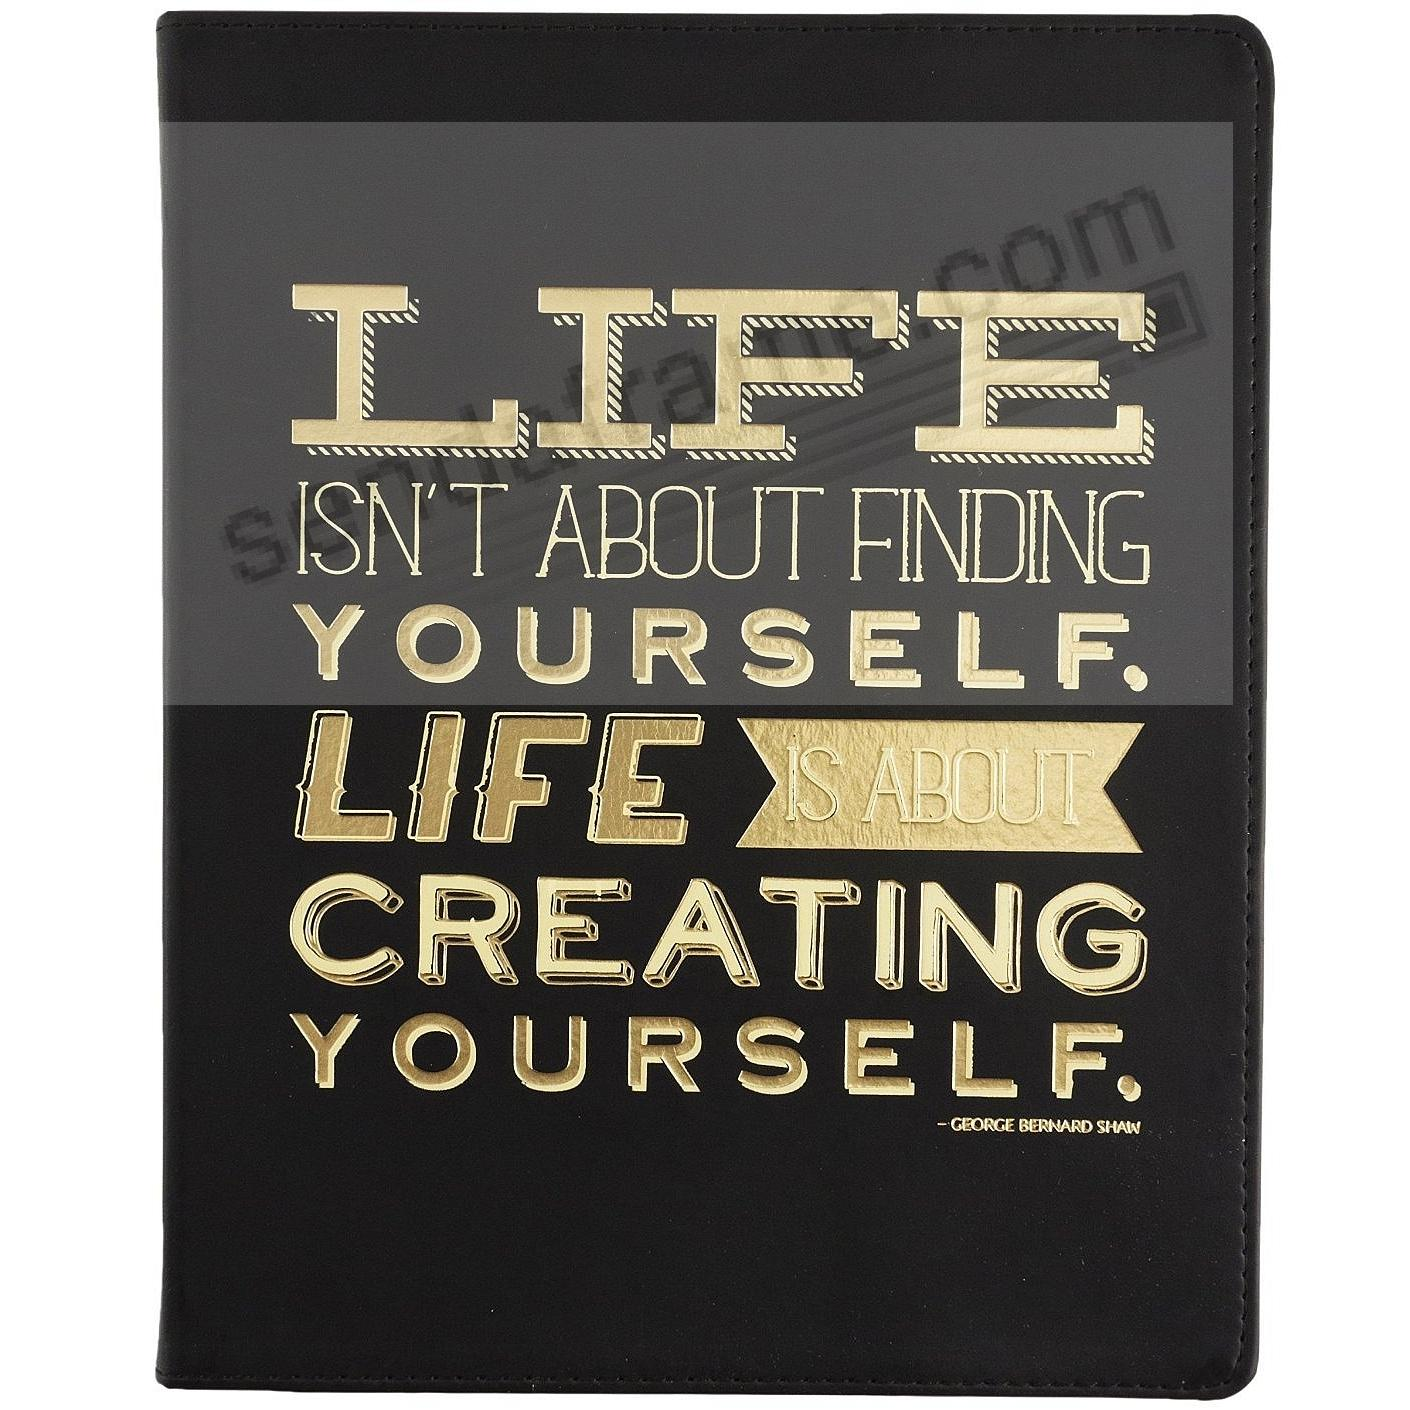 Black CREATING YOURSELF Leather-like 8x10 Journal by Eccolo™ LOFTY THINKING Collection